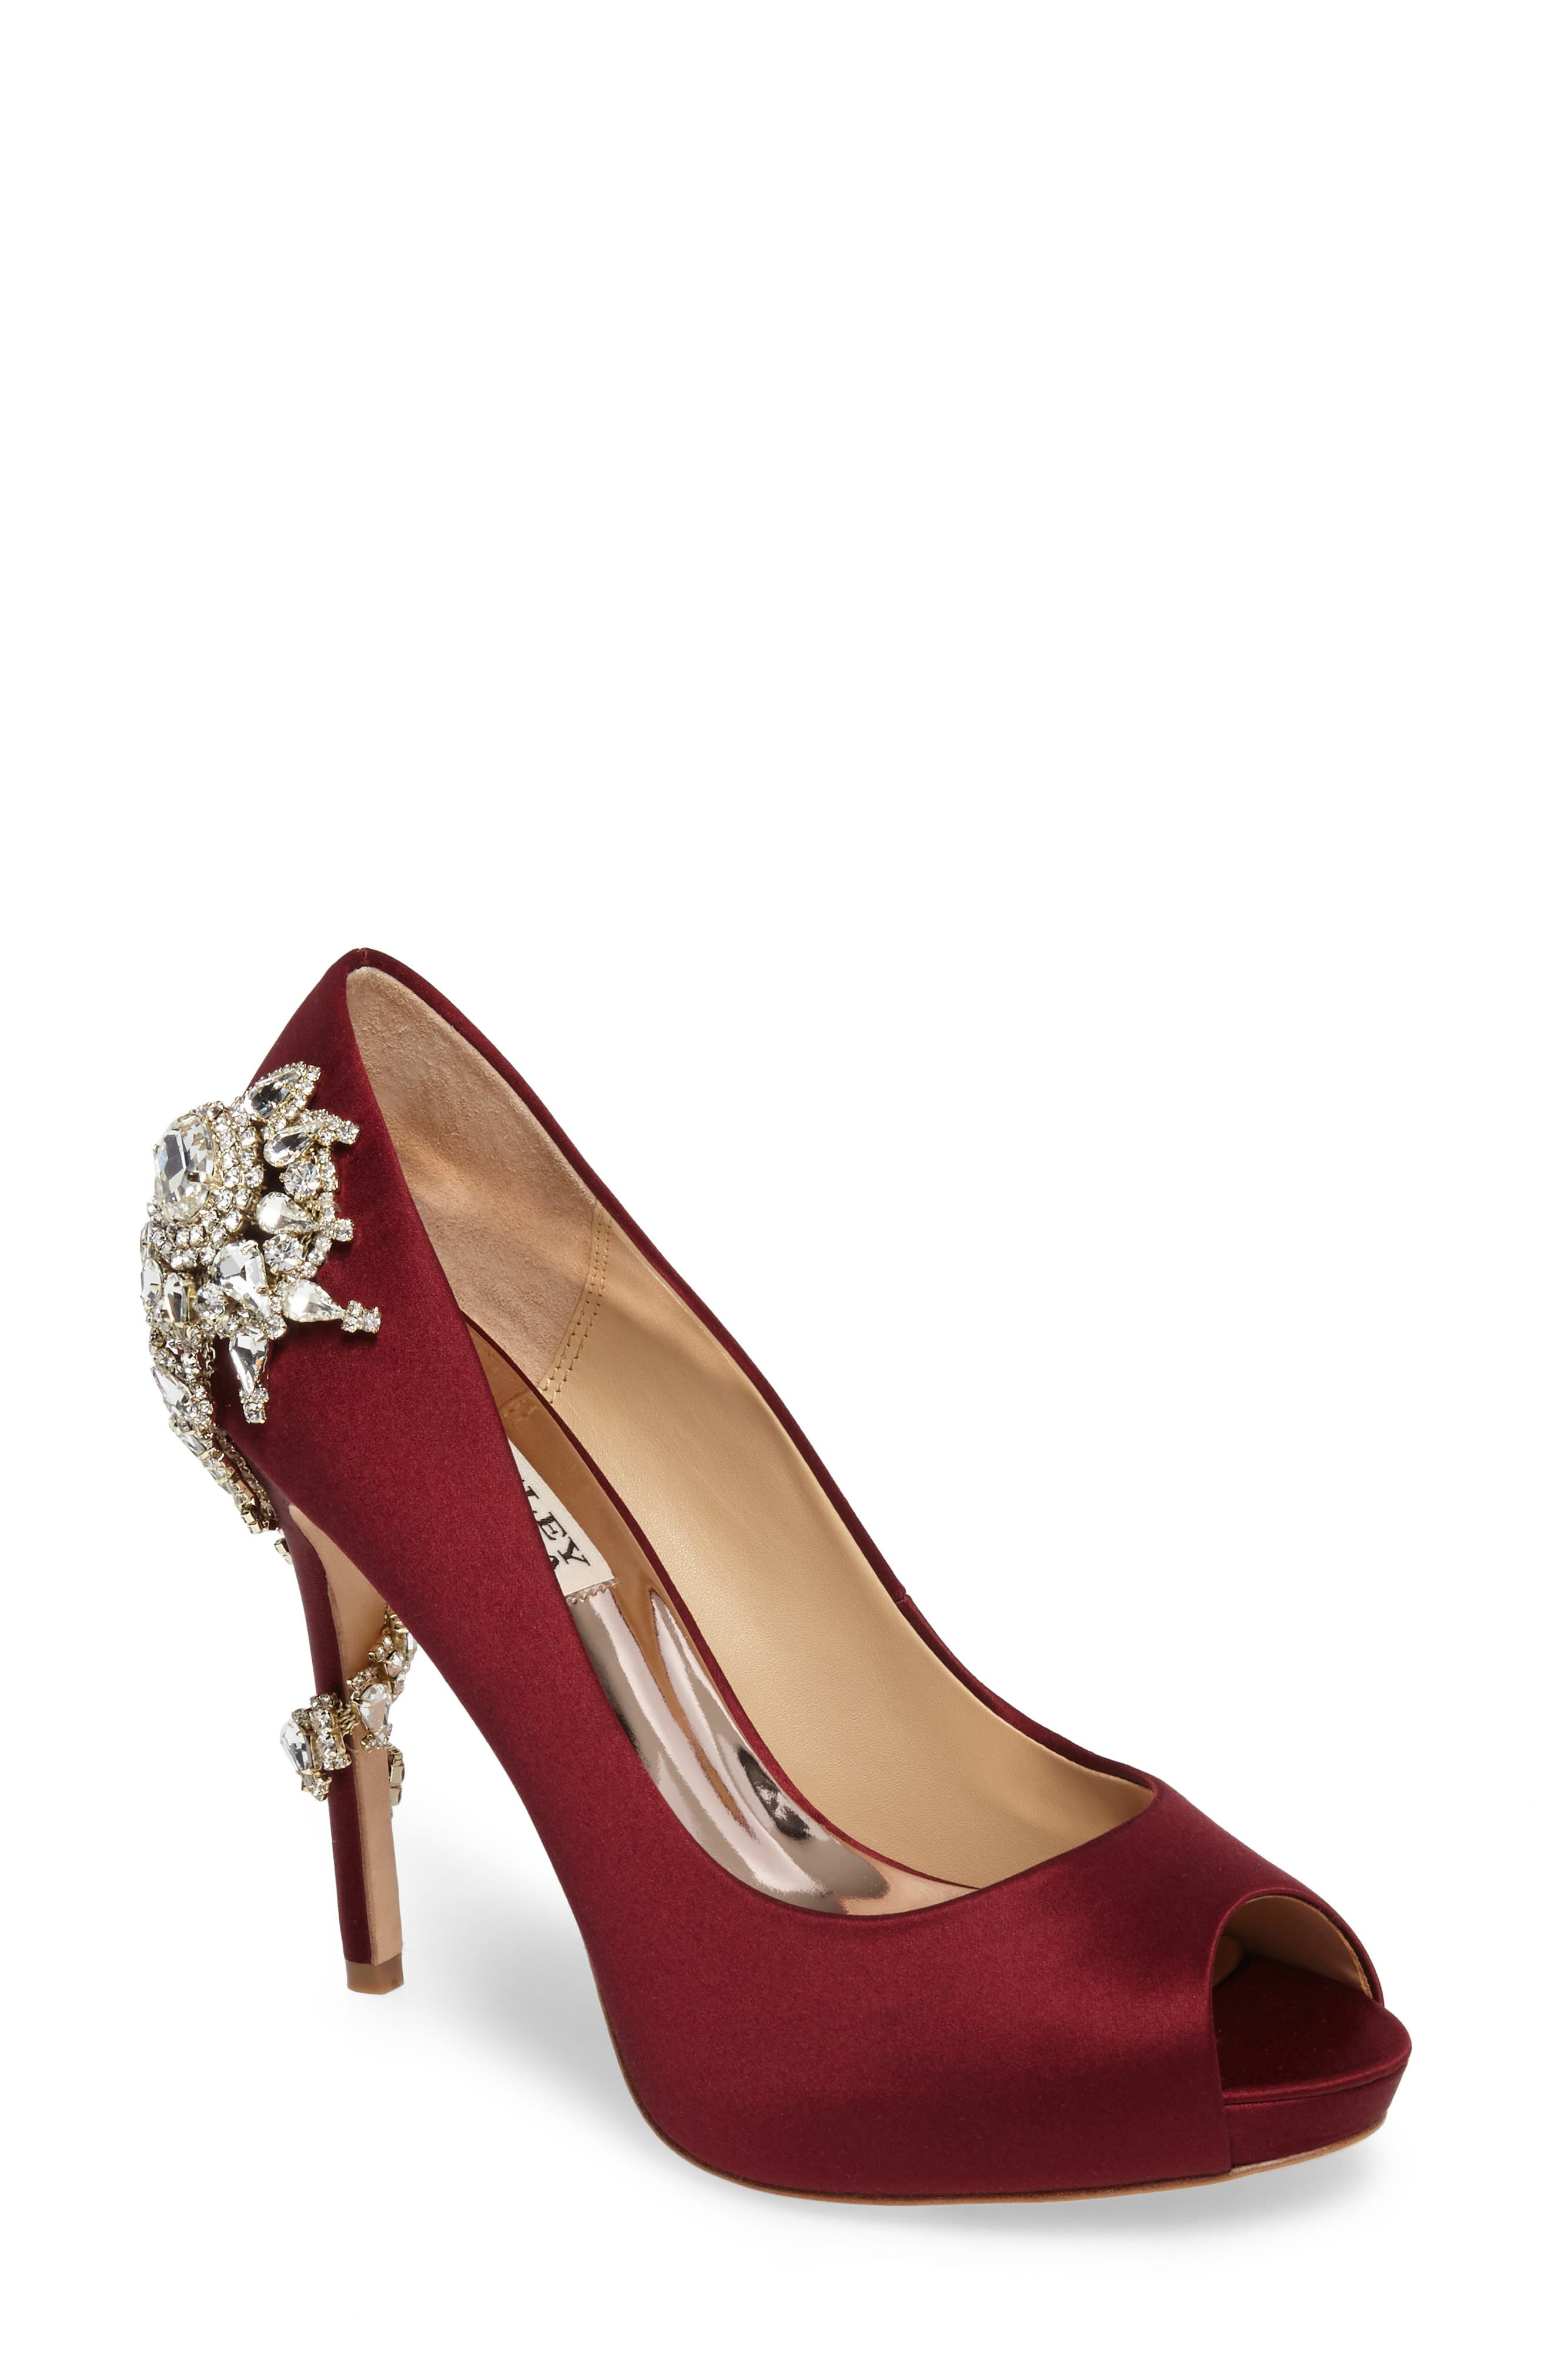 Badgley Mischka 'Royal' Crystal Embellished Peeptoe Pump,                             Main thumbnail 1, color,                             Burgundy Satin